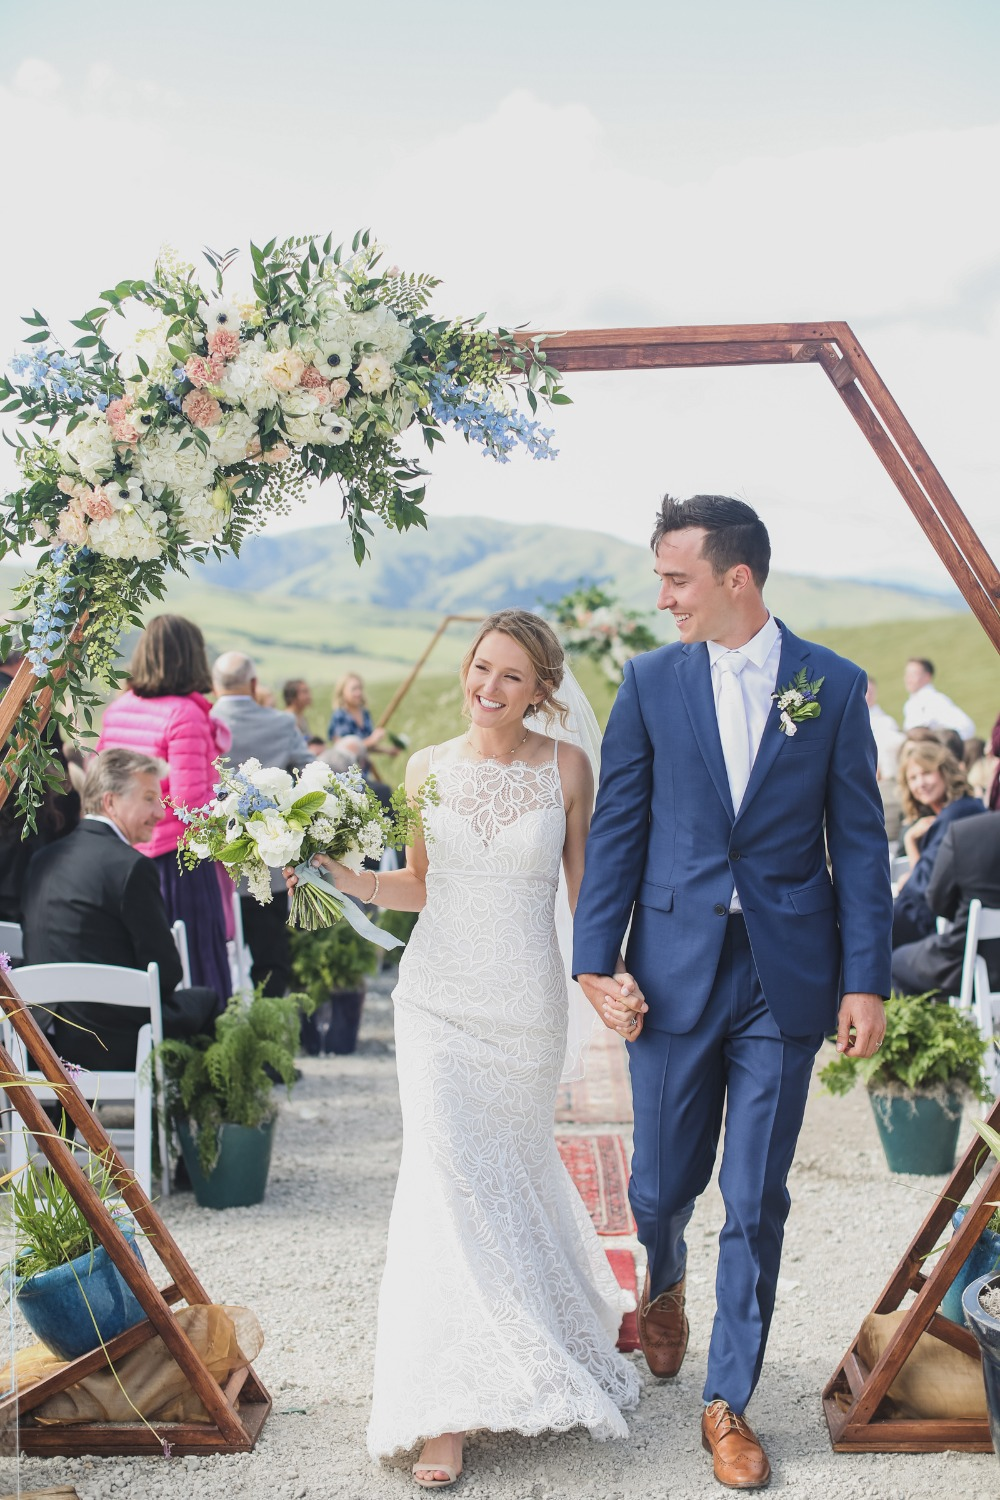 hexagon wedding arch backdrop with florals